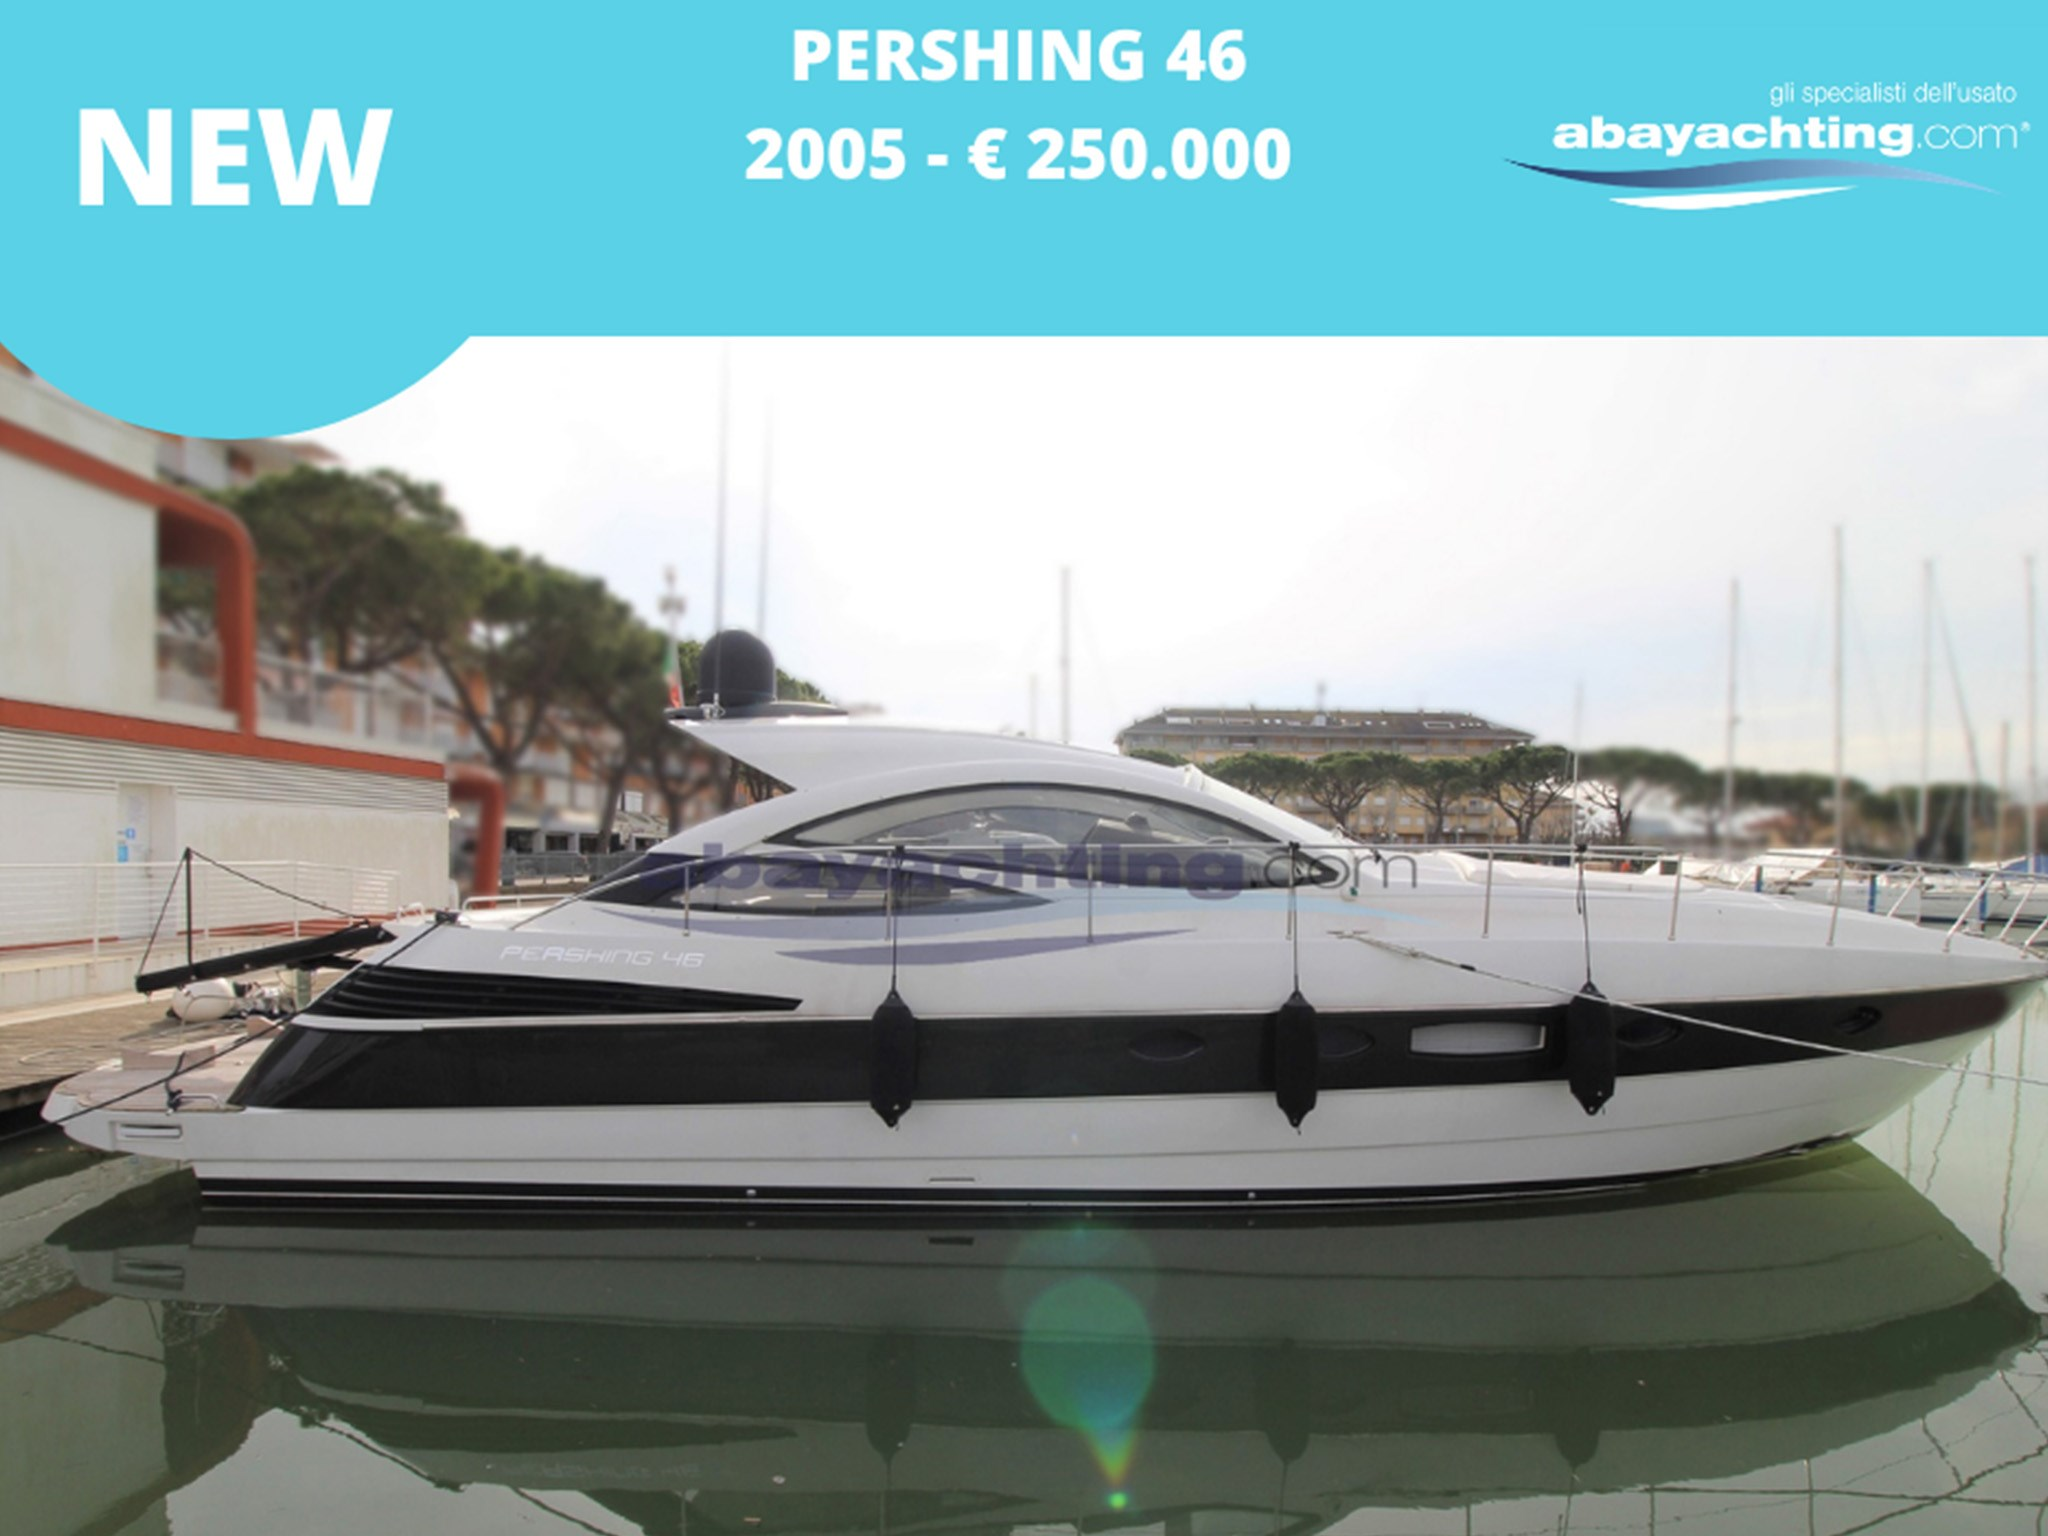 New arrival Pershing 46